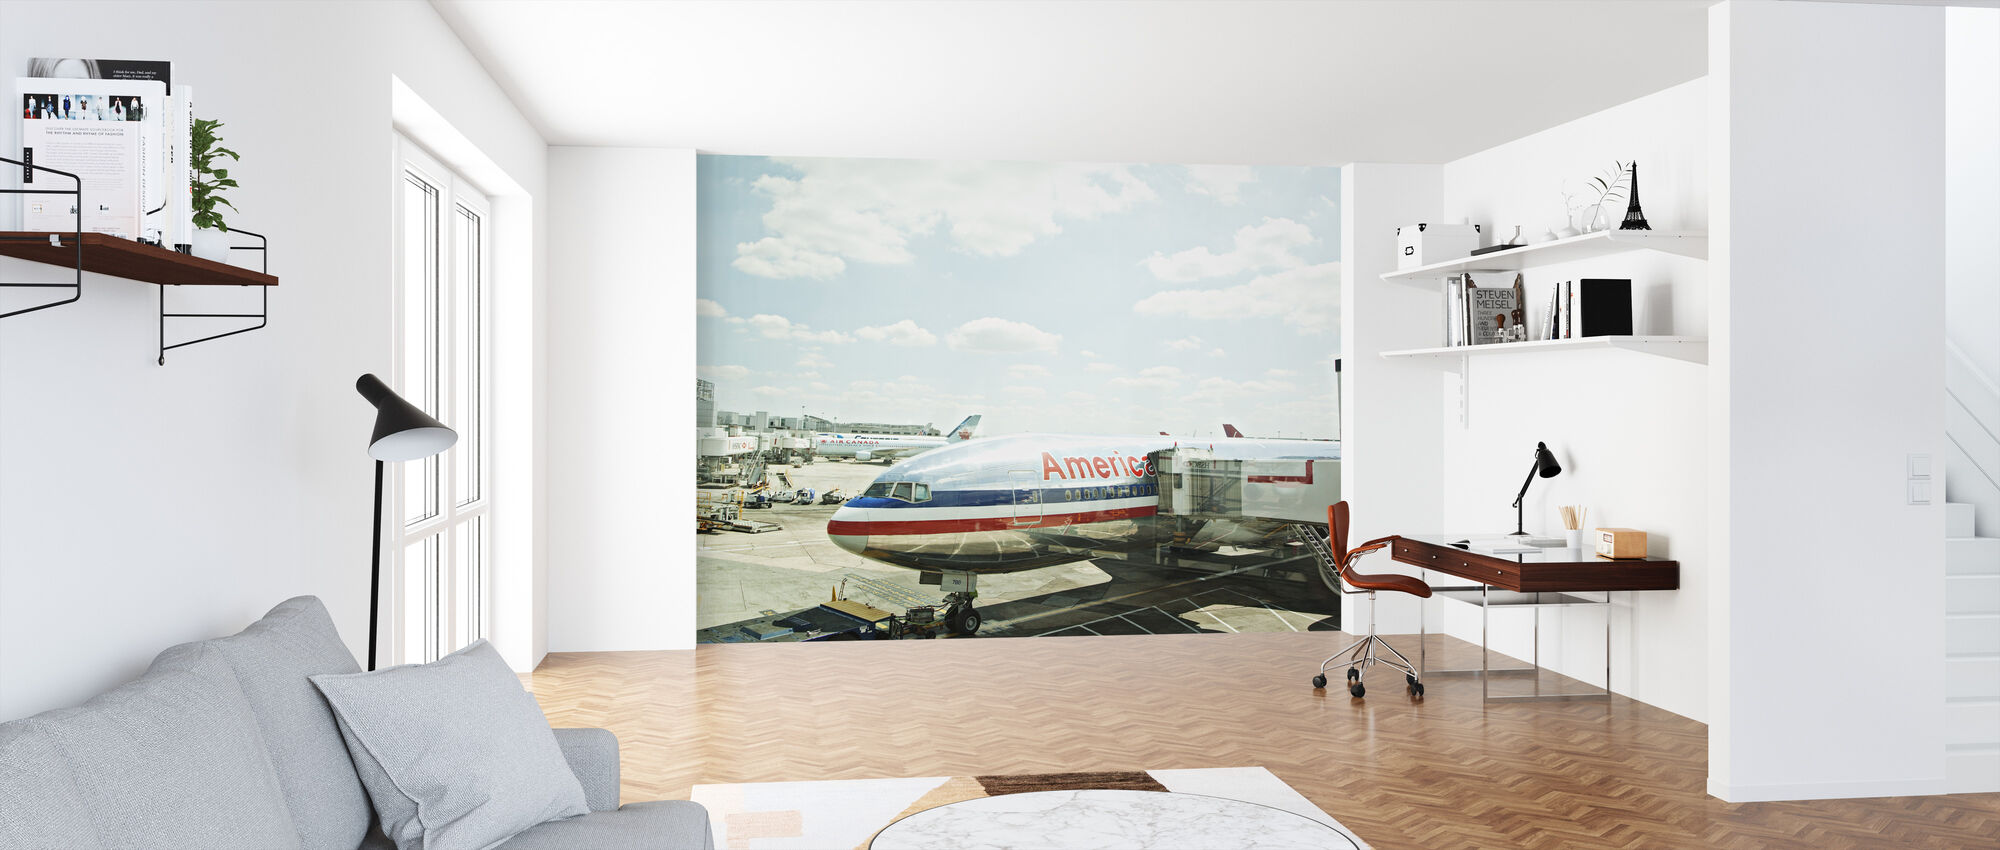 Airplane in Heathrow, England - Wallpaper - Office